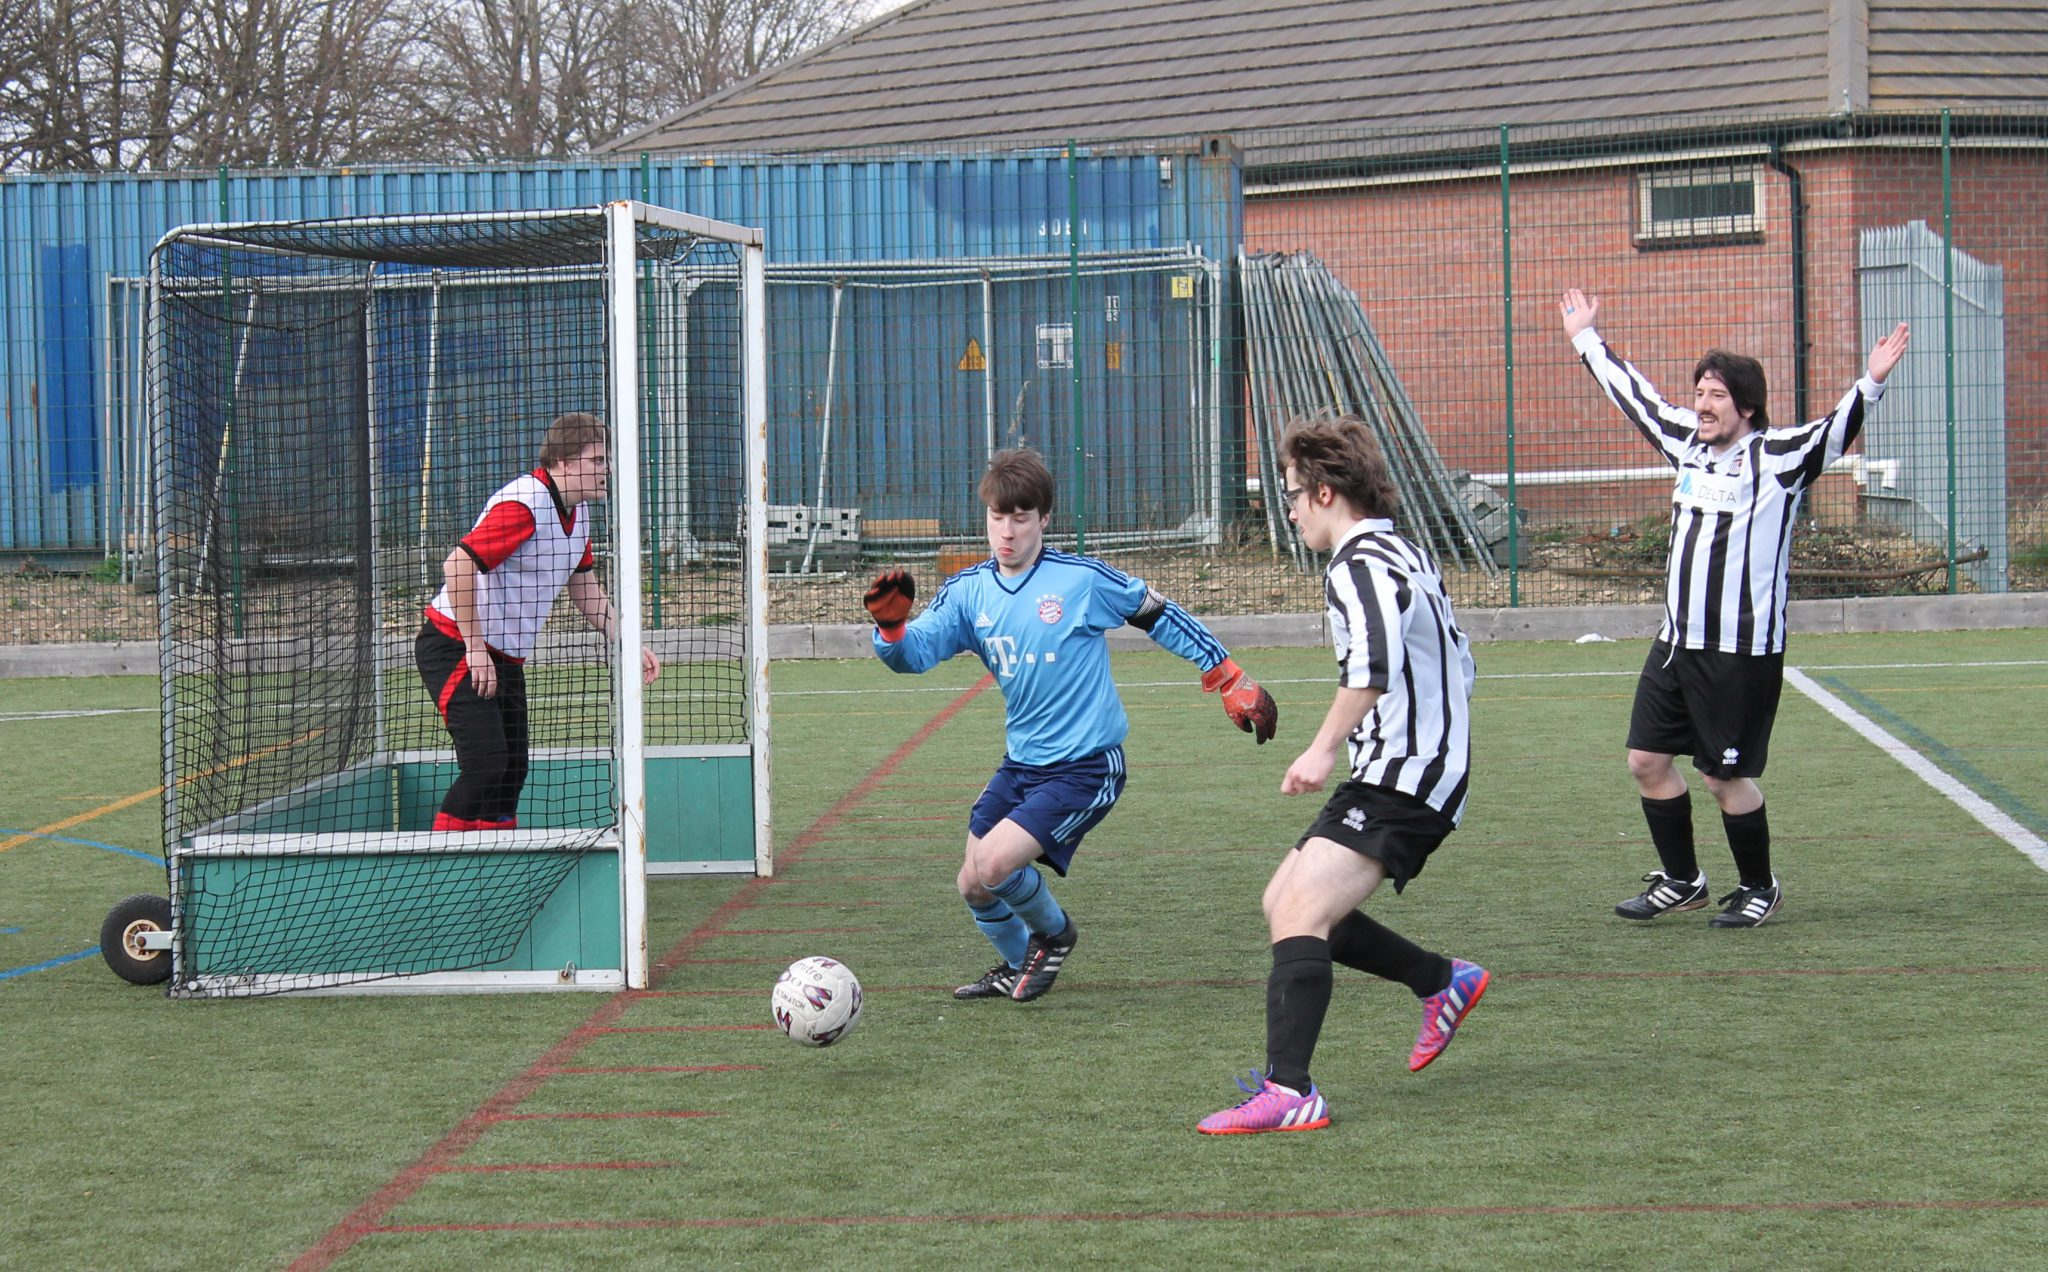 Latest Action From The Linkage Football League Linkage